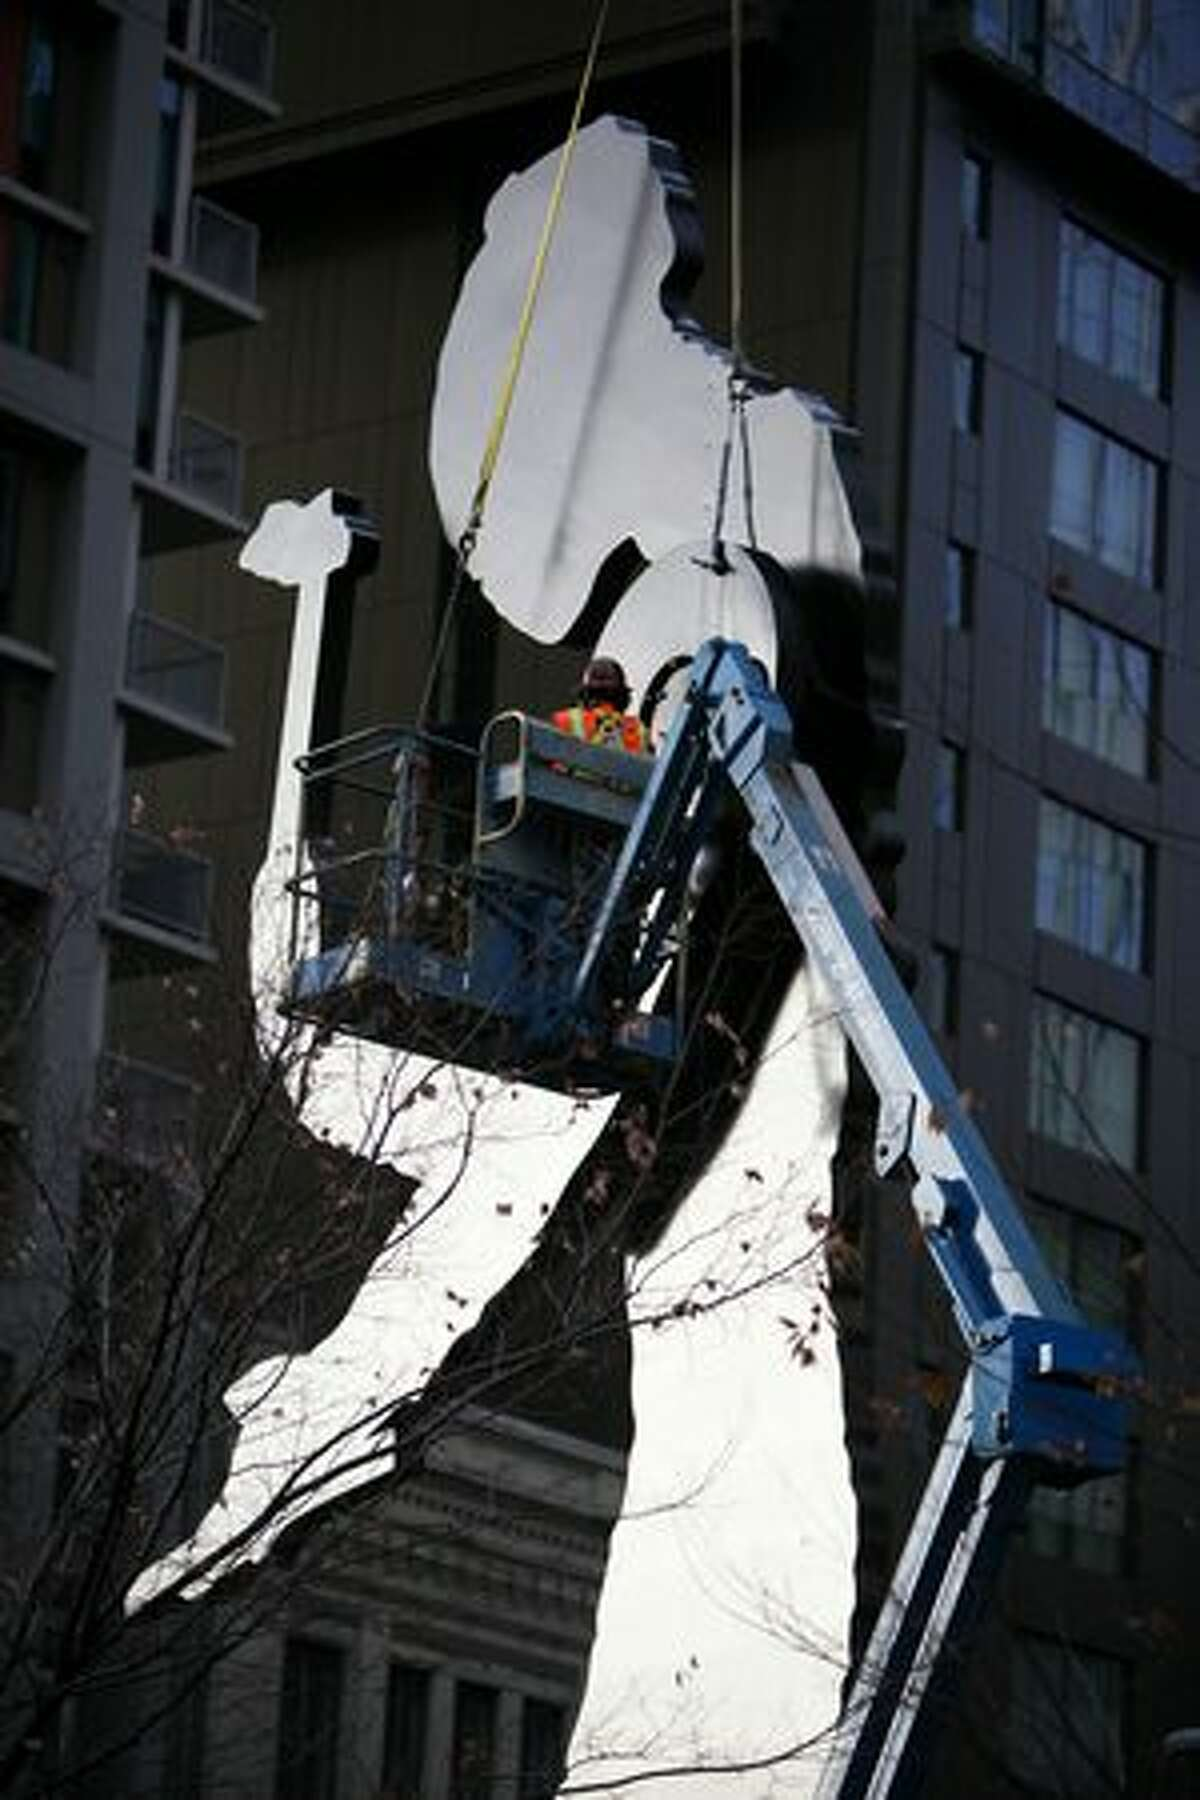 """Workers unbolt the hammer and arm from downtown Seattle's iconic """"Hammering Man"""" in front of the Seattle Art Museum. Since Hammering Man was installed in 1992 his hammer has logged nearly 90,000 hours, striking 4 times a minute, or roughly 21,600,000 strikes."""